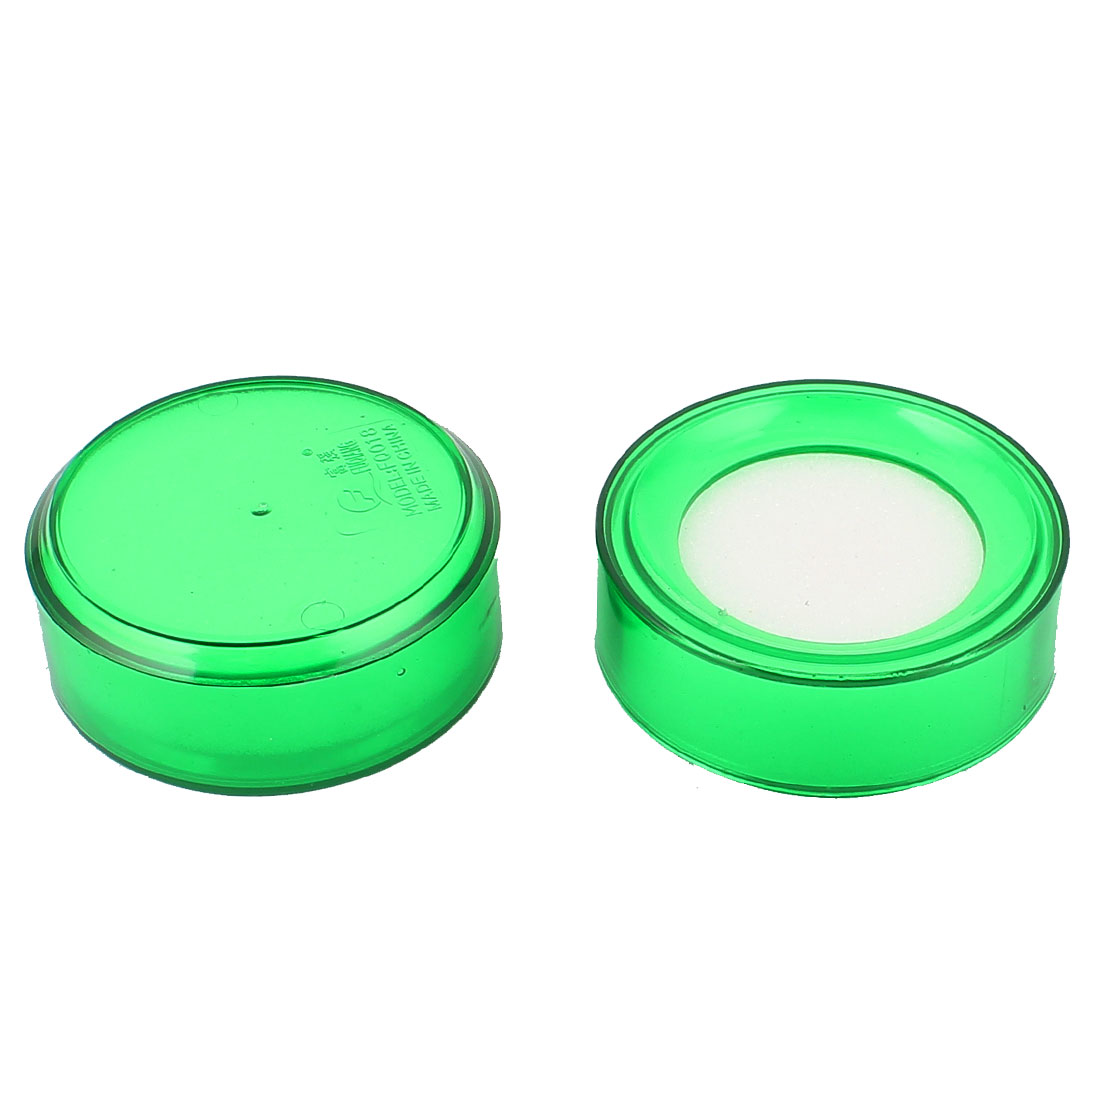 Green Round Case Soft White Finger Wet Sponge for Money Casher 2pcs